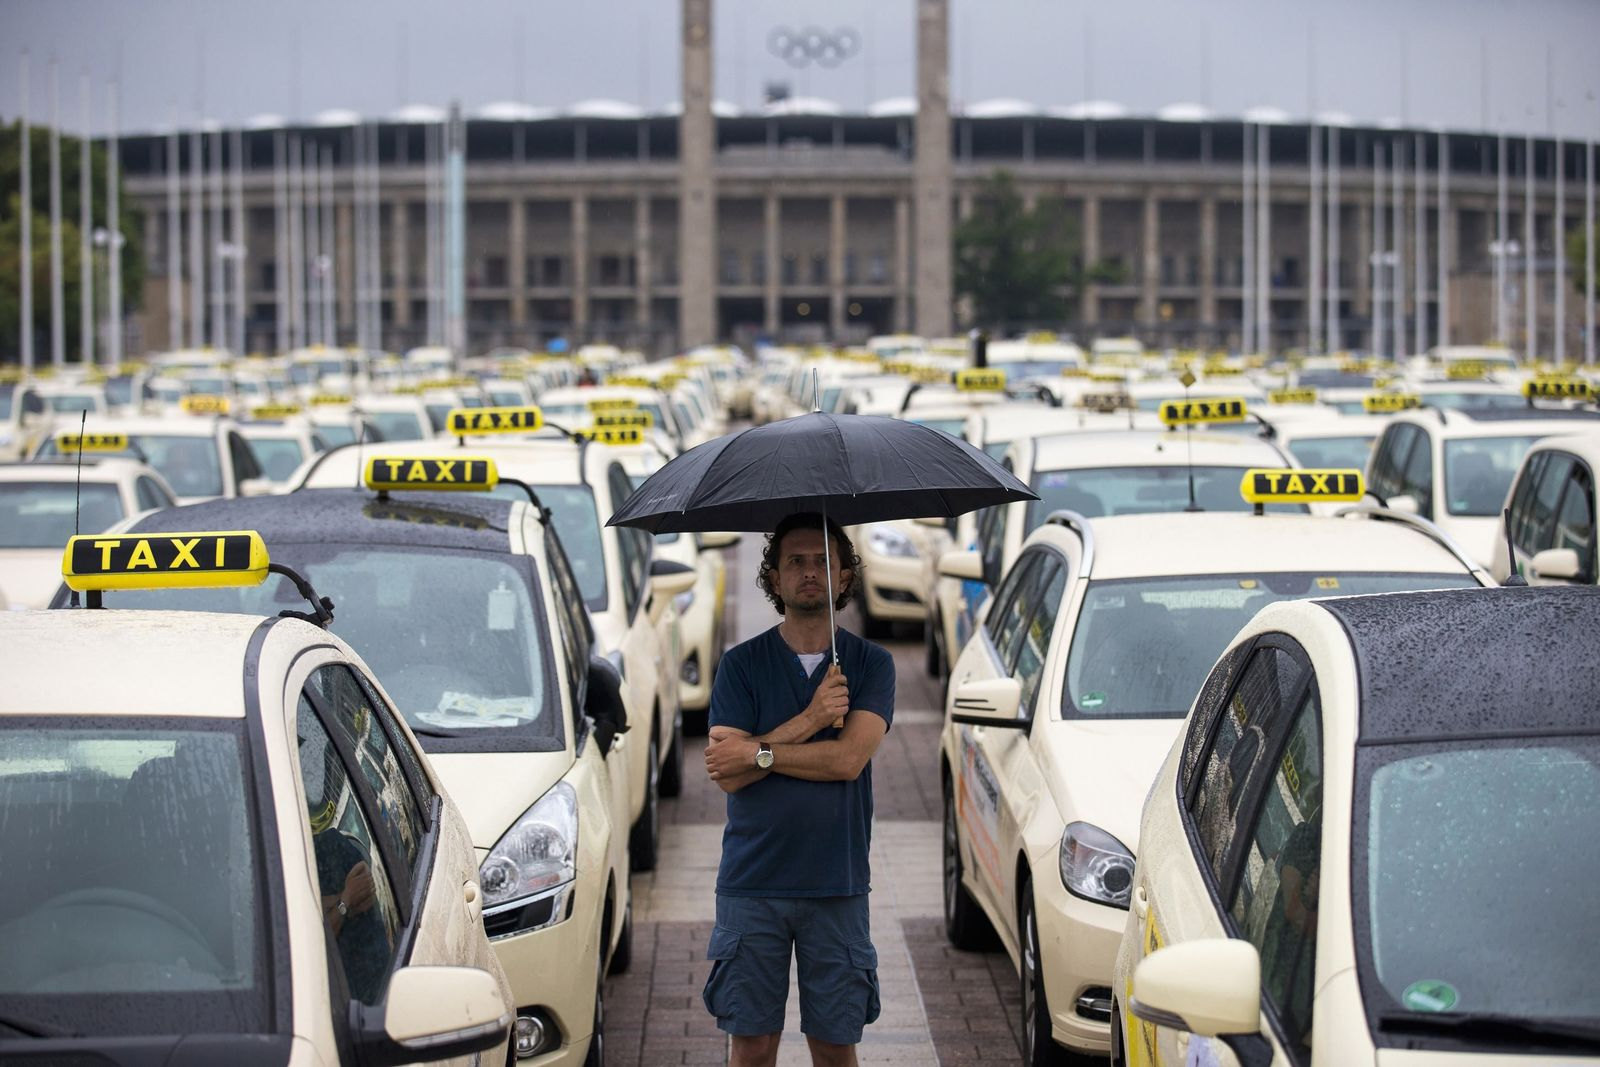 PROTESTS-TAXIS/